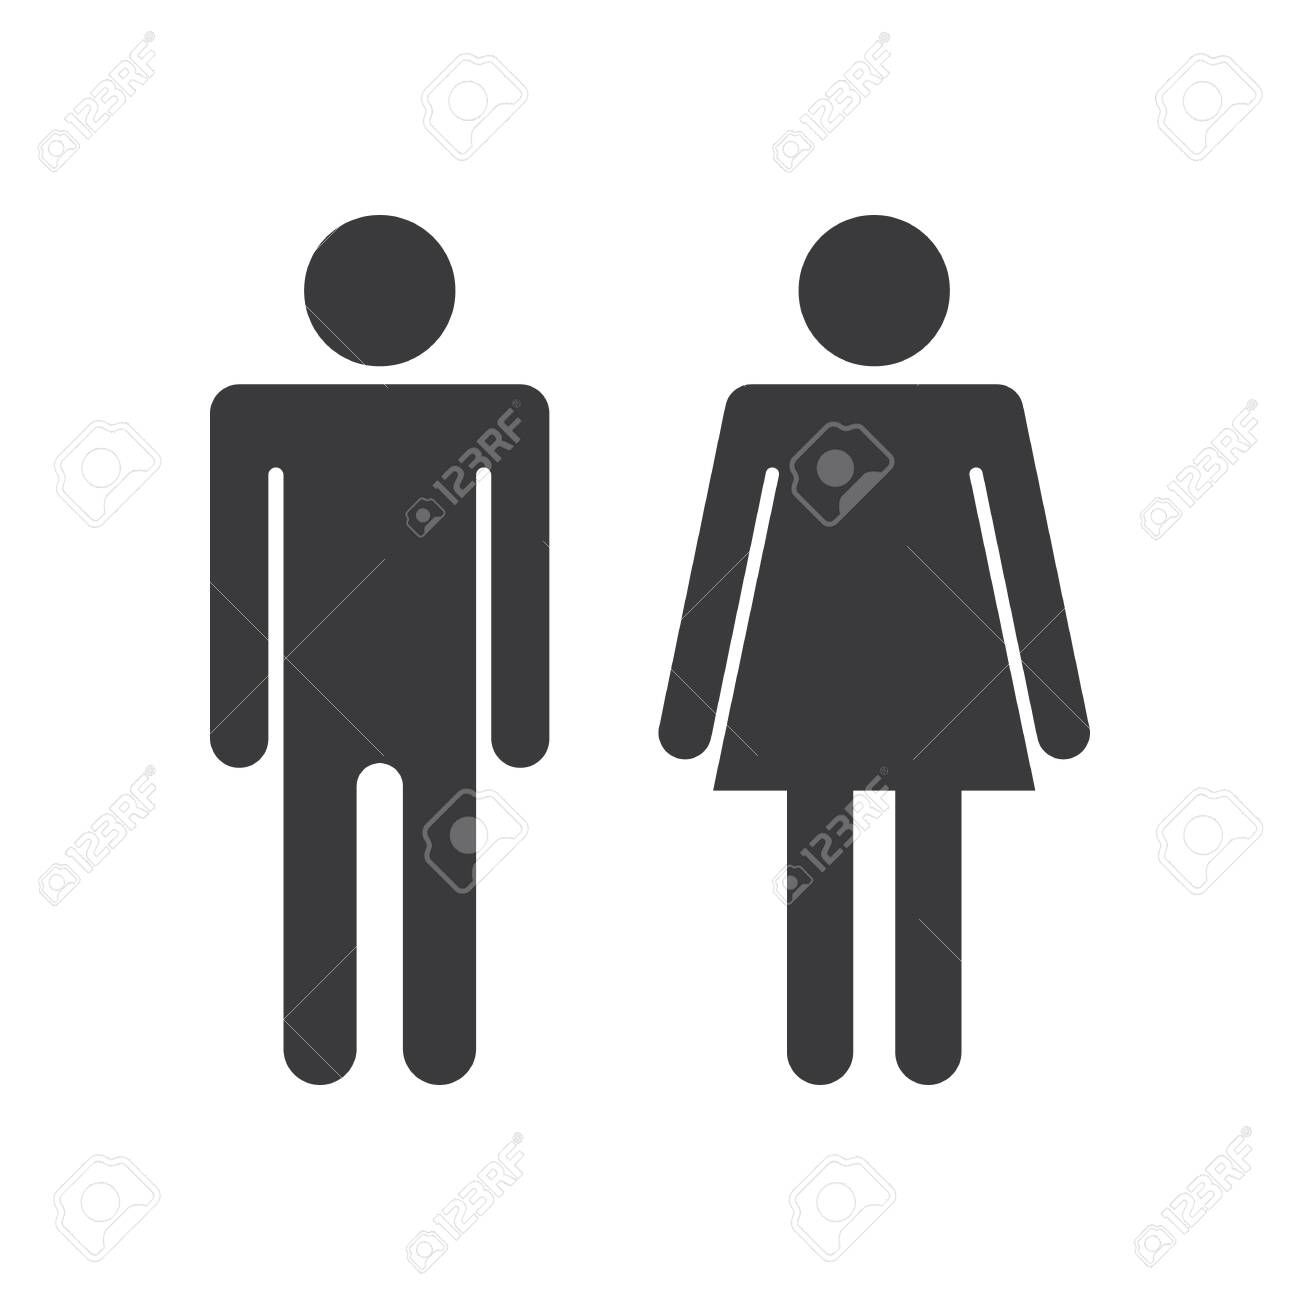 a man and a lady toilet sign - 150051072